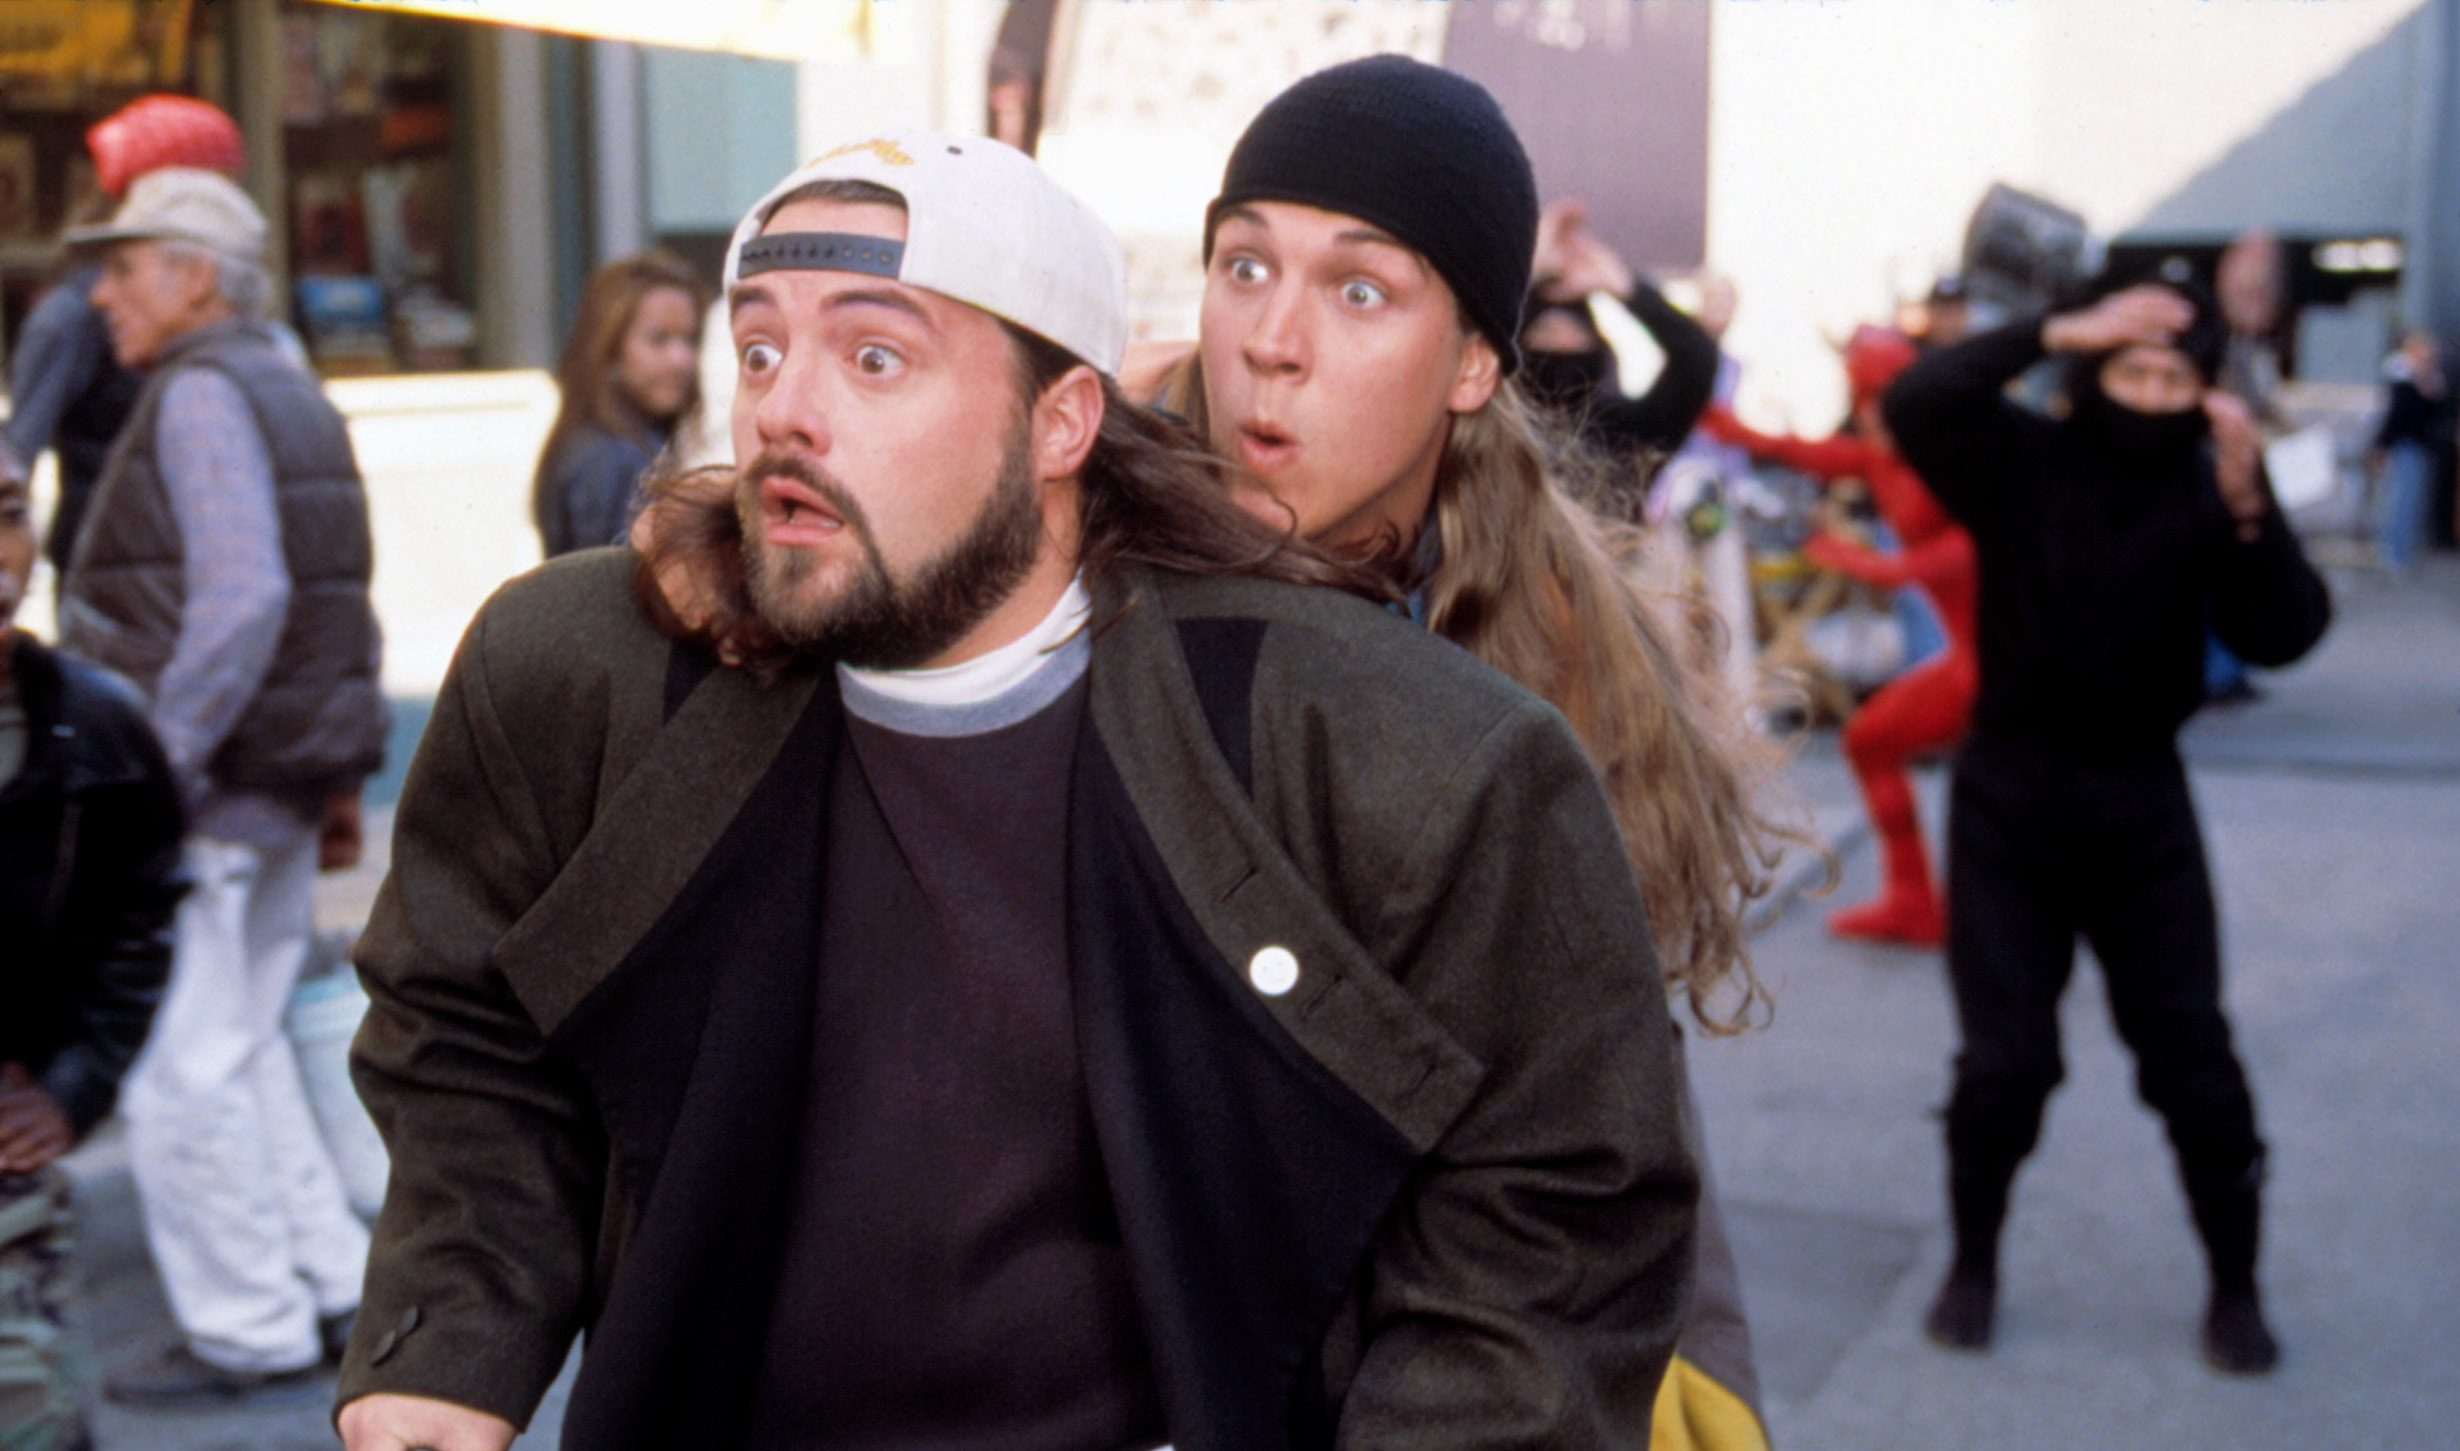 Clerks III': Kevin Smith Threequel Acquired By Lionsgate – Deadline